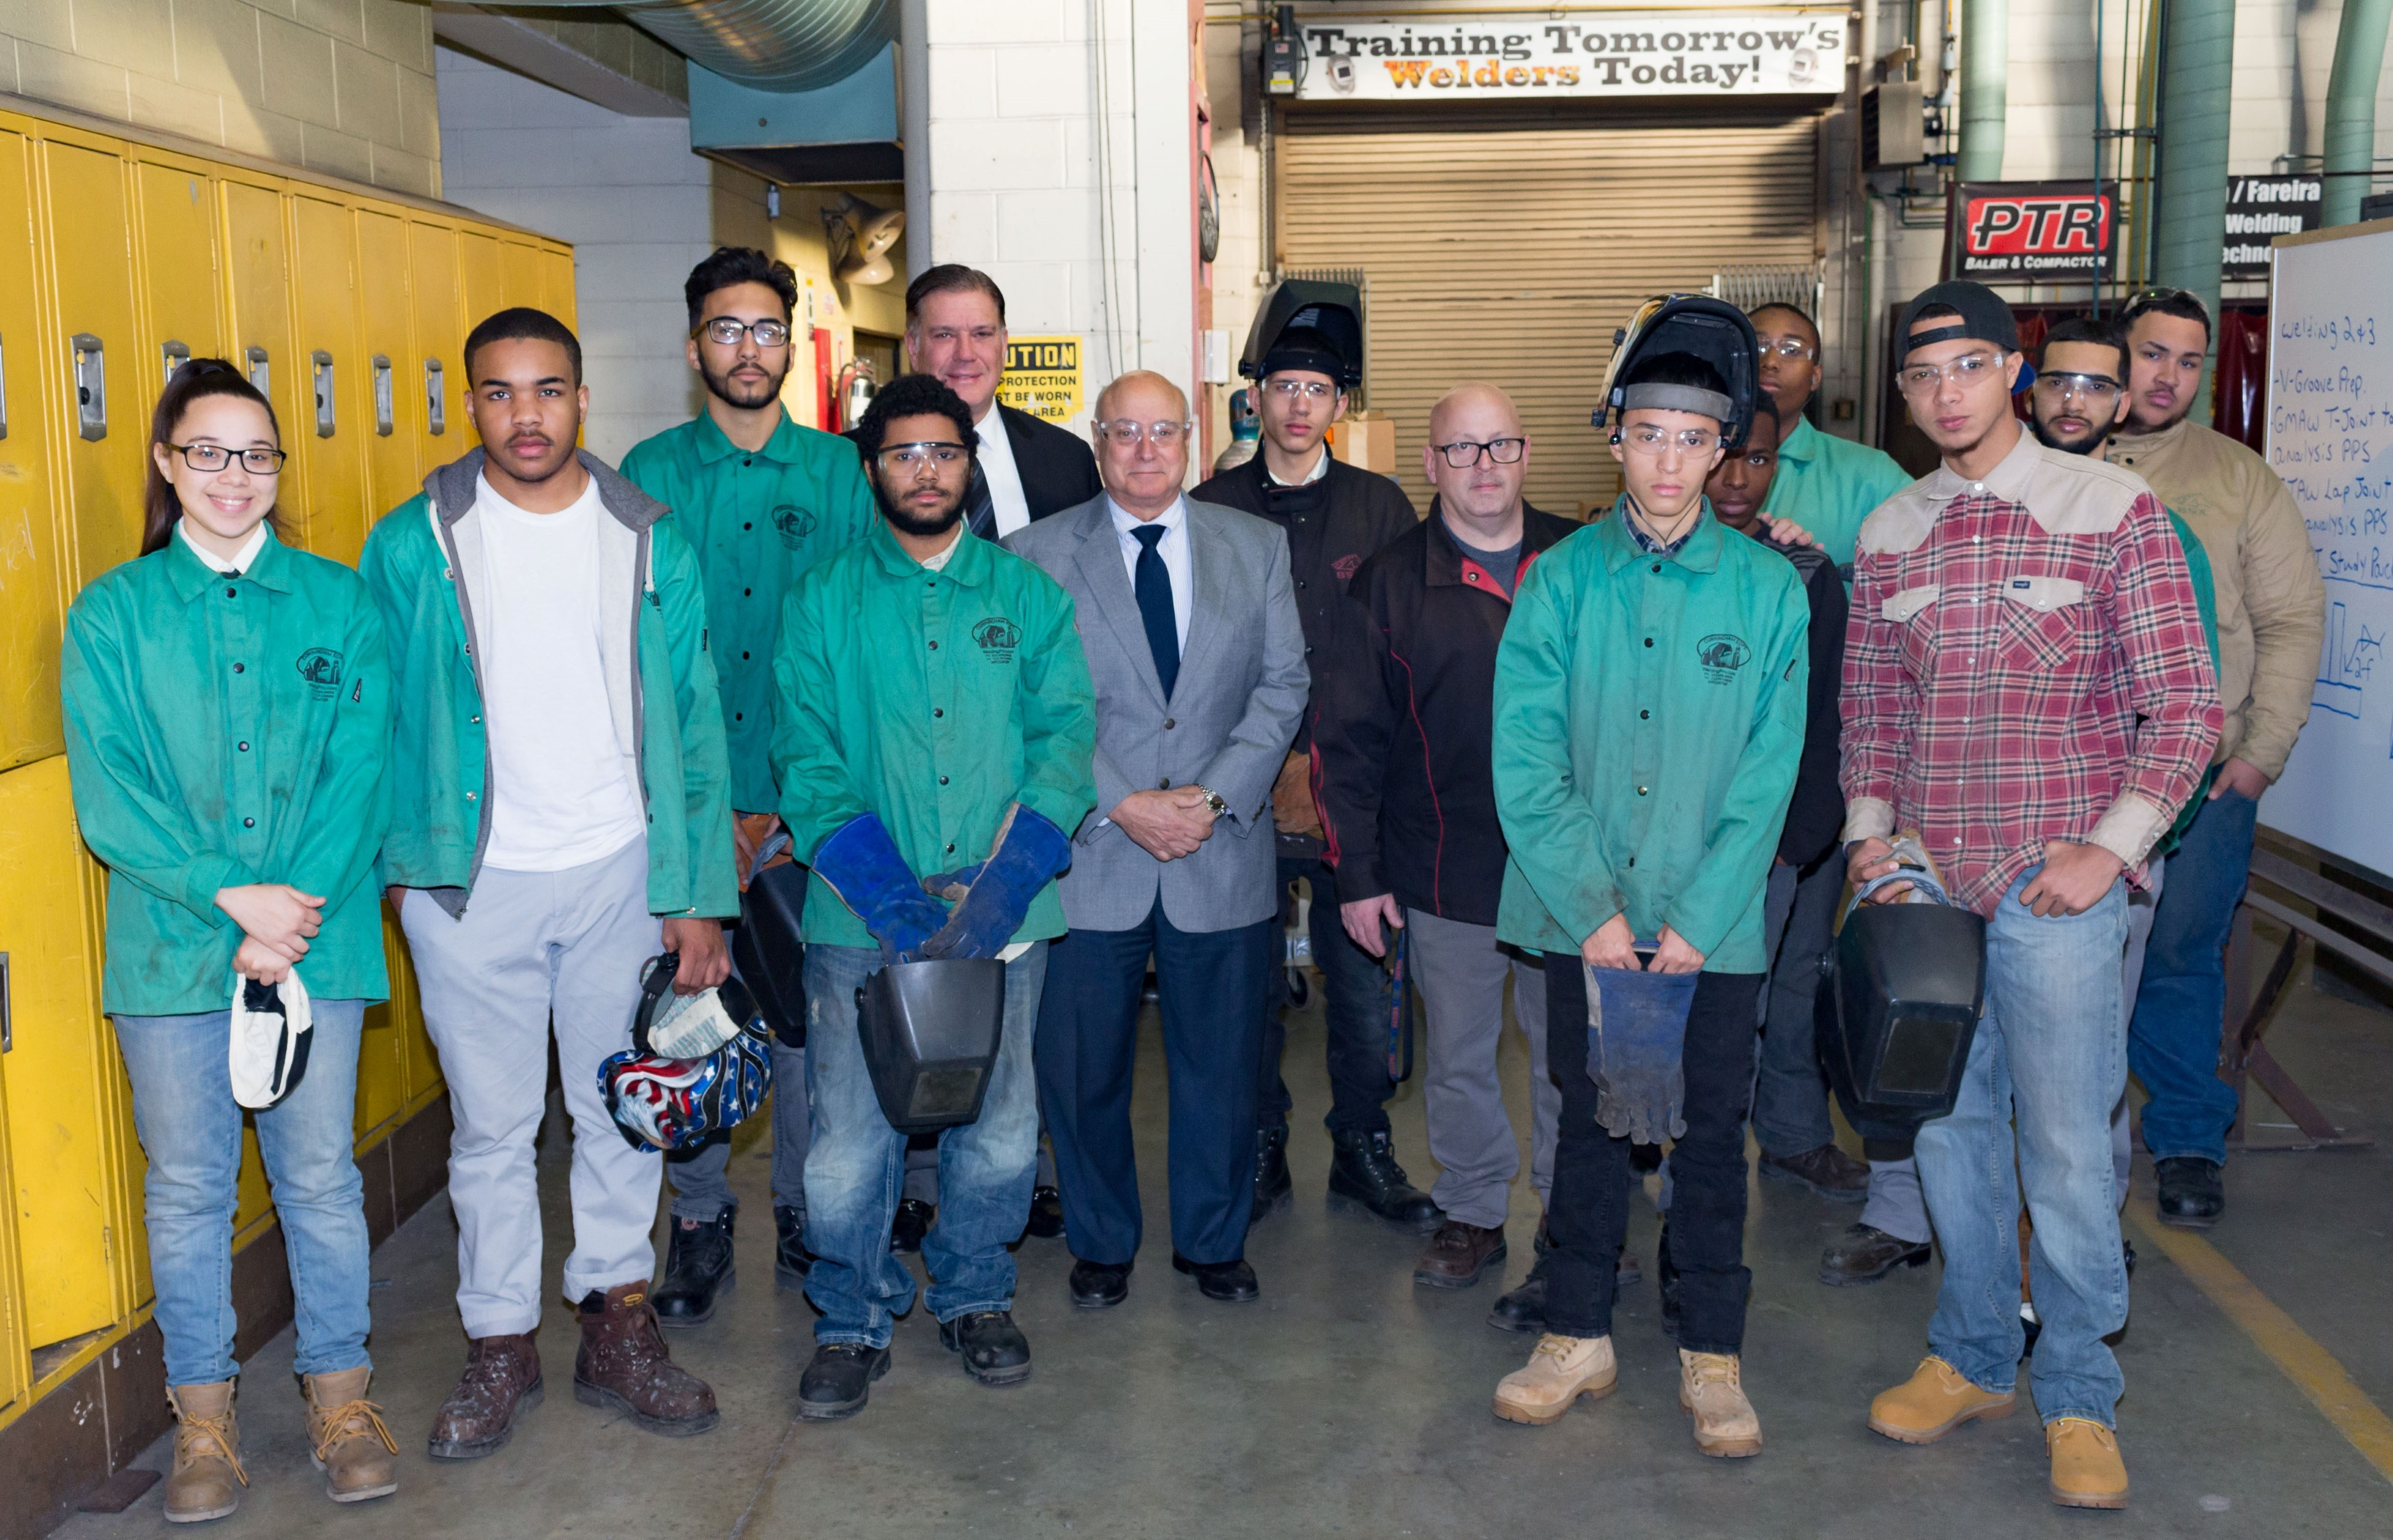 manufacturing, vocational skills, philadelphia, community, baler, compactor, Giving Tuesday